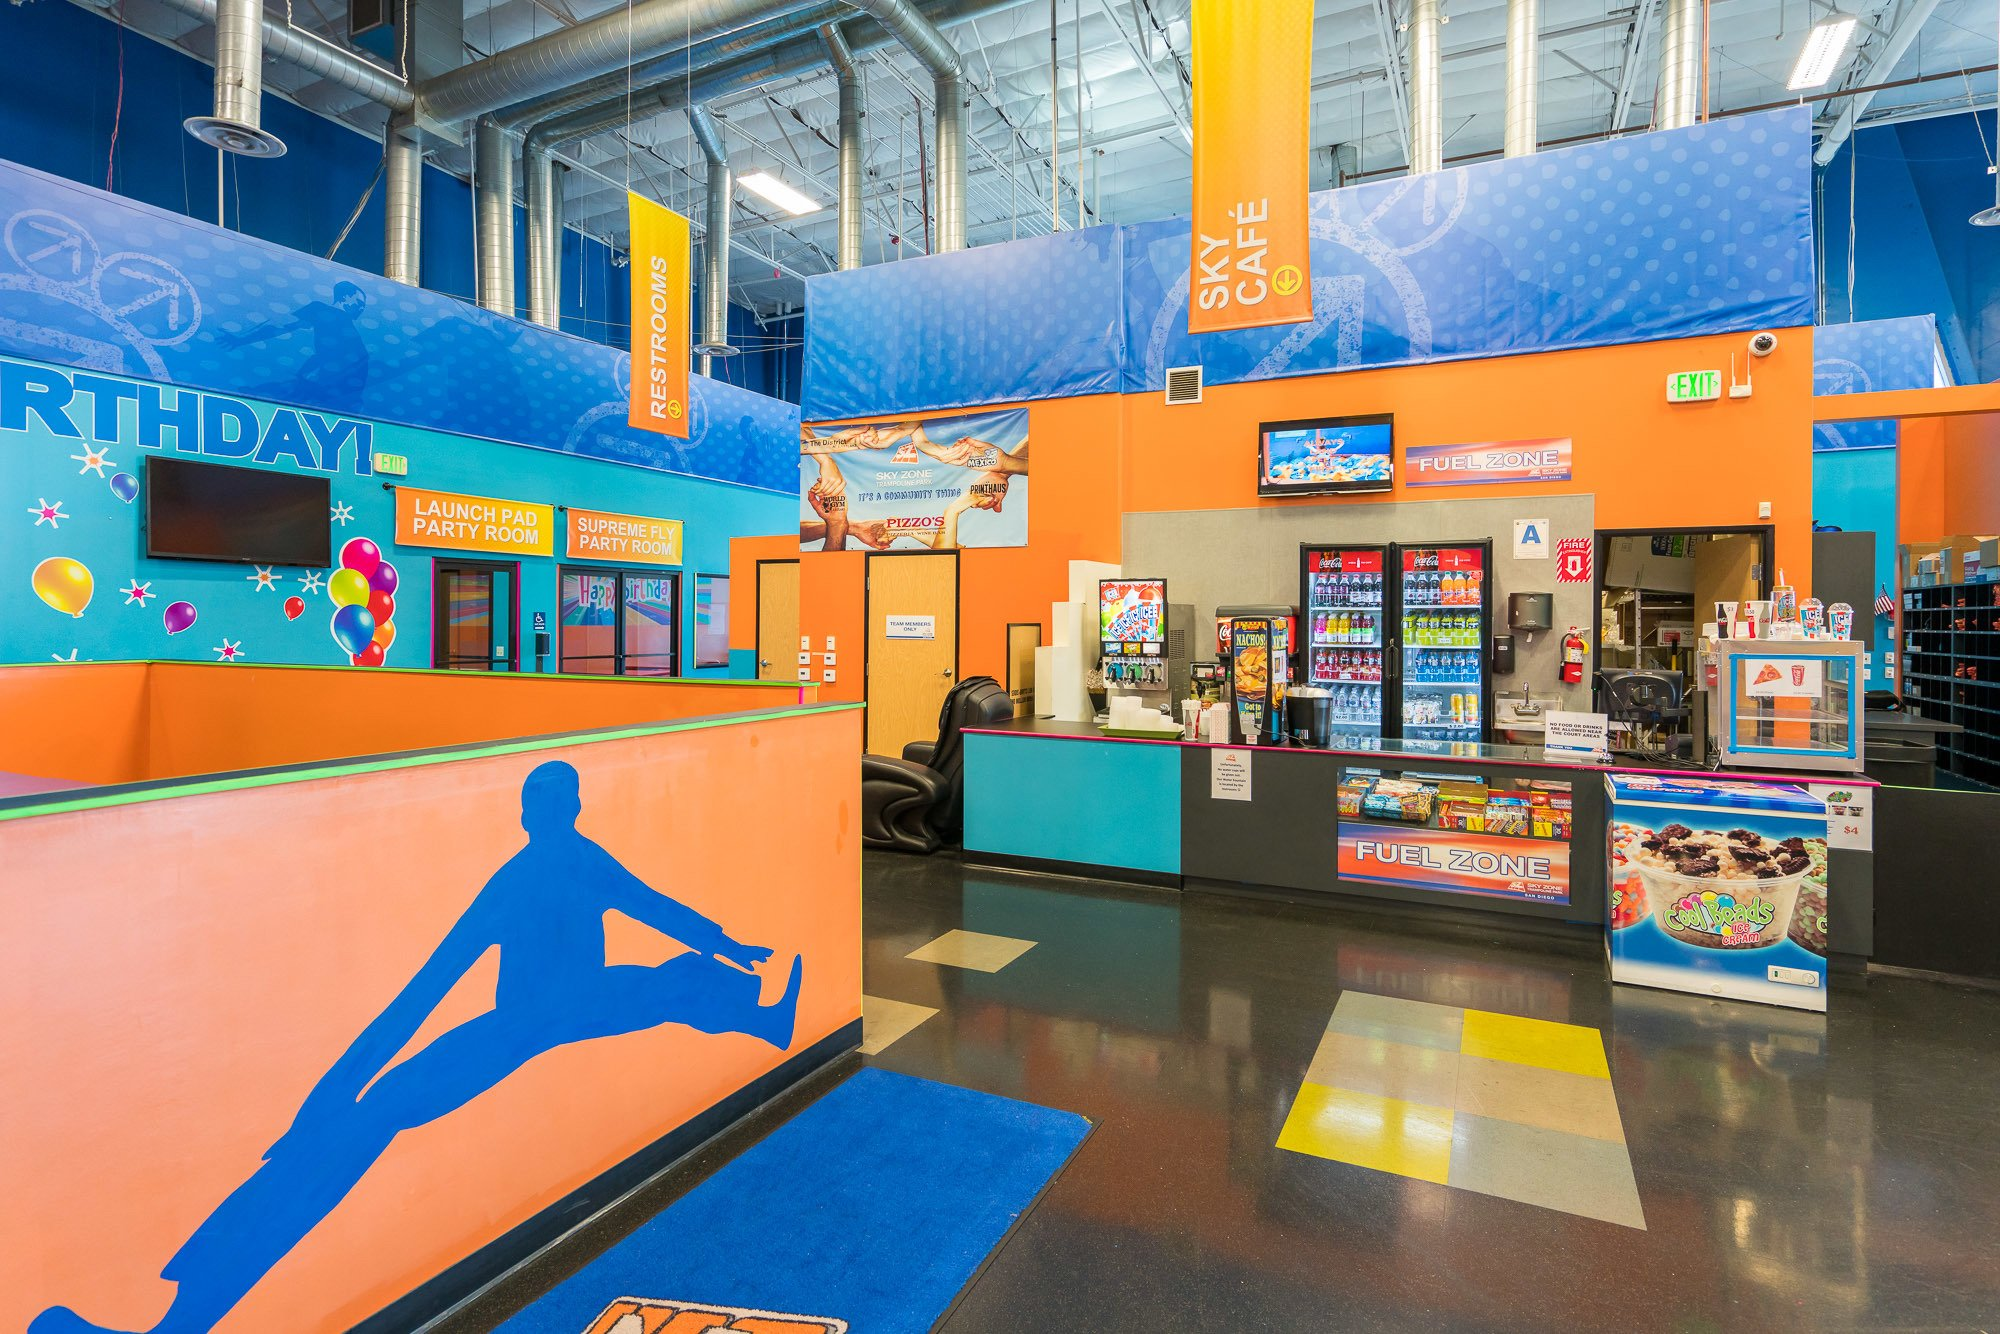 You can have refreshments, ice cream and snacks at Sky Zone San Diego.